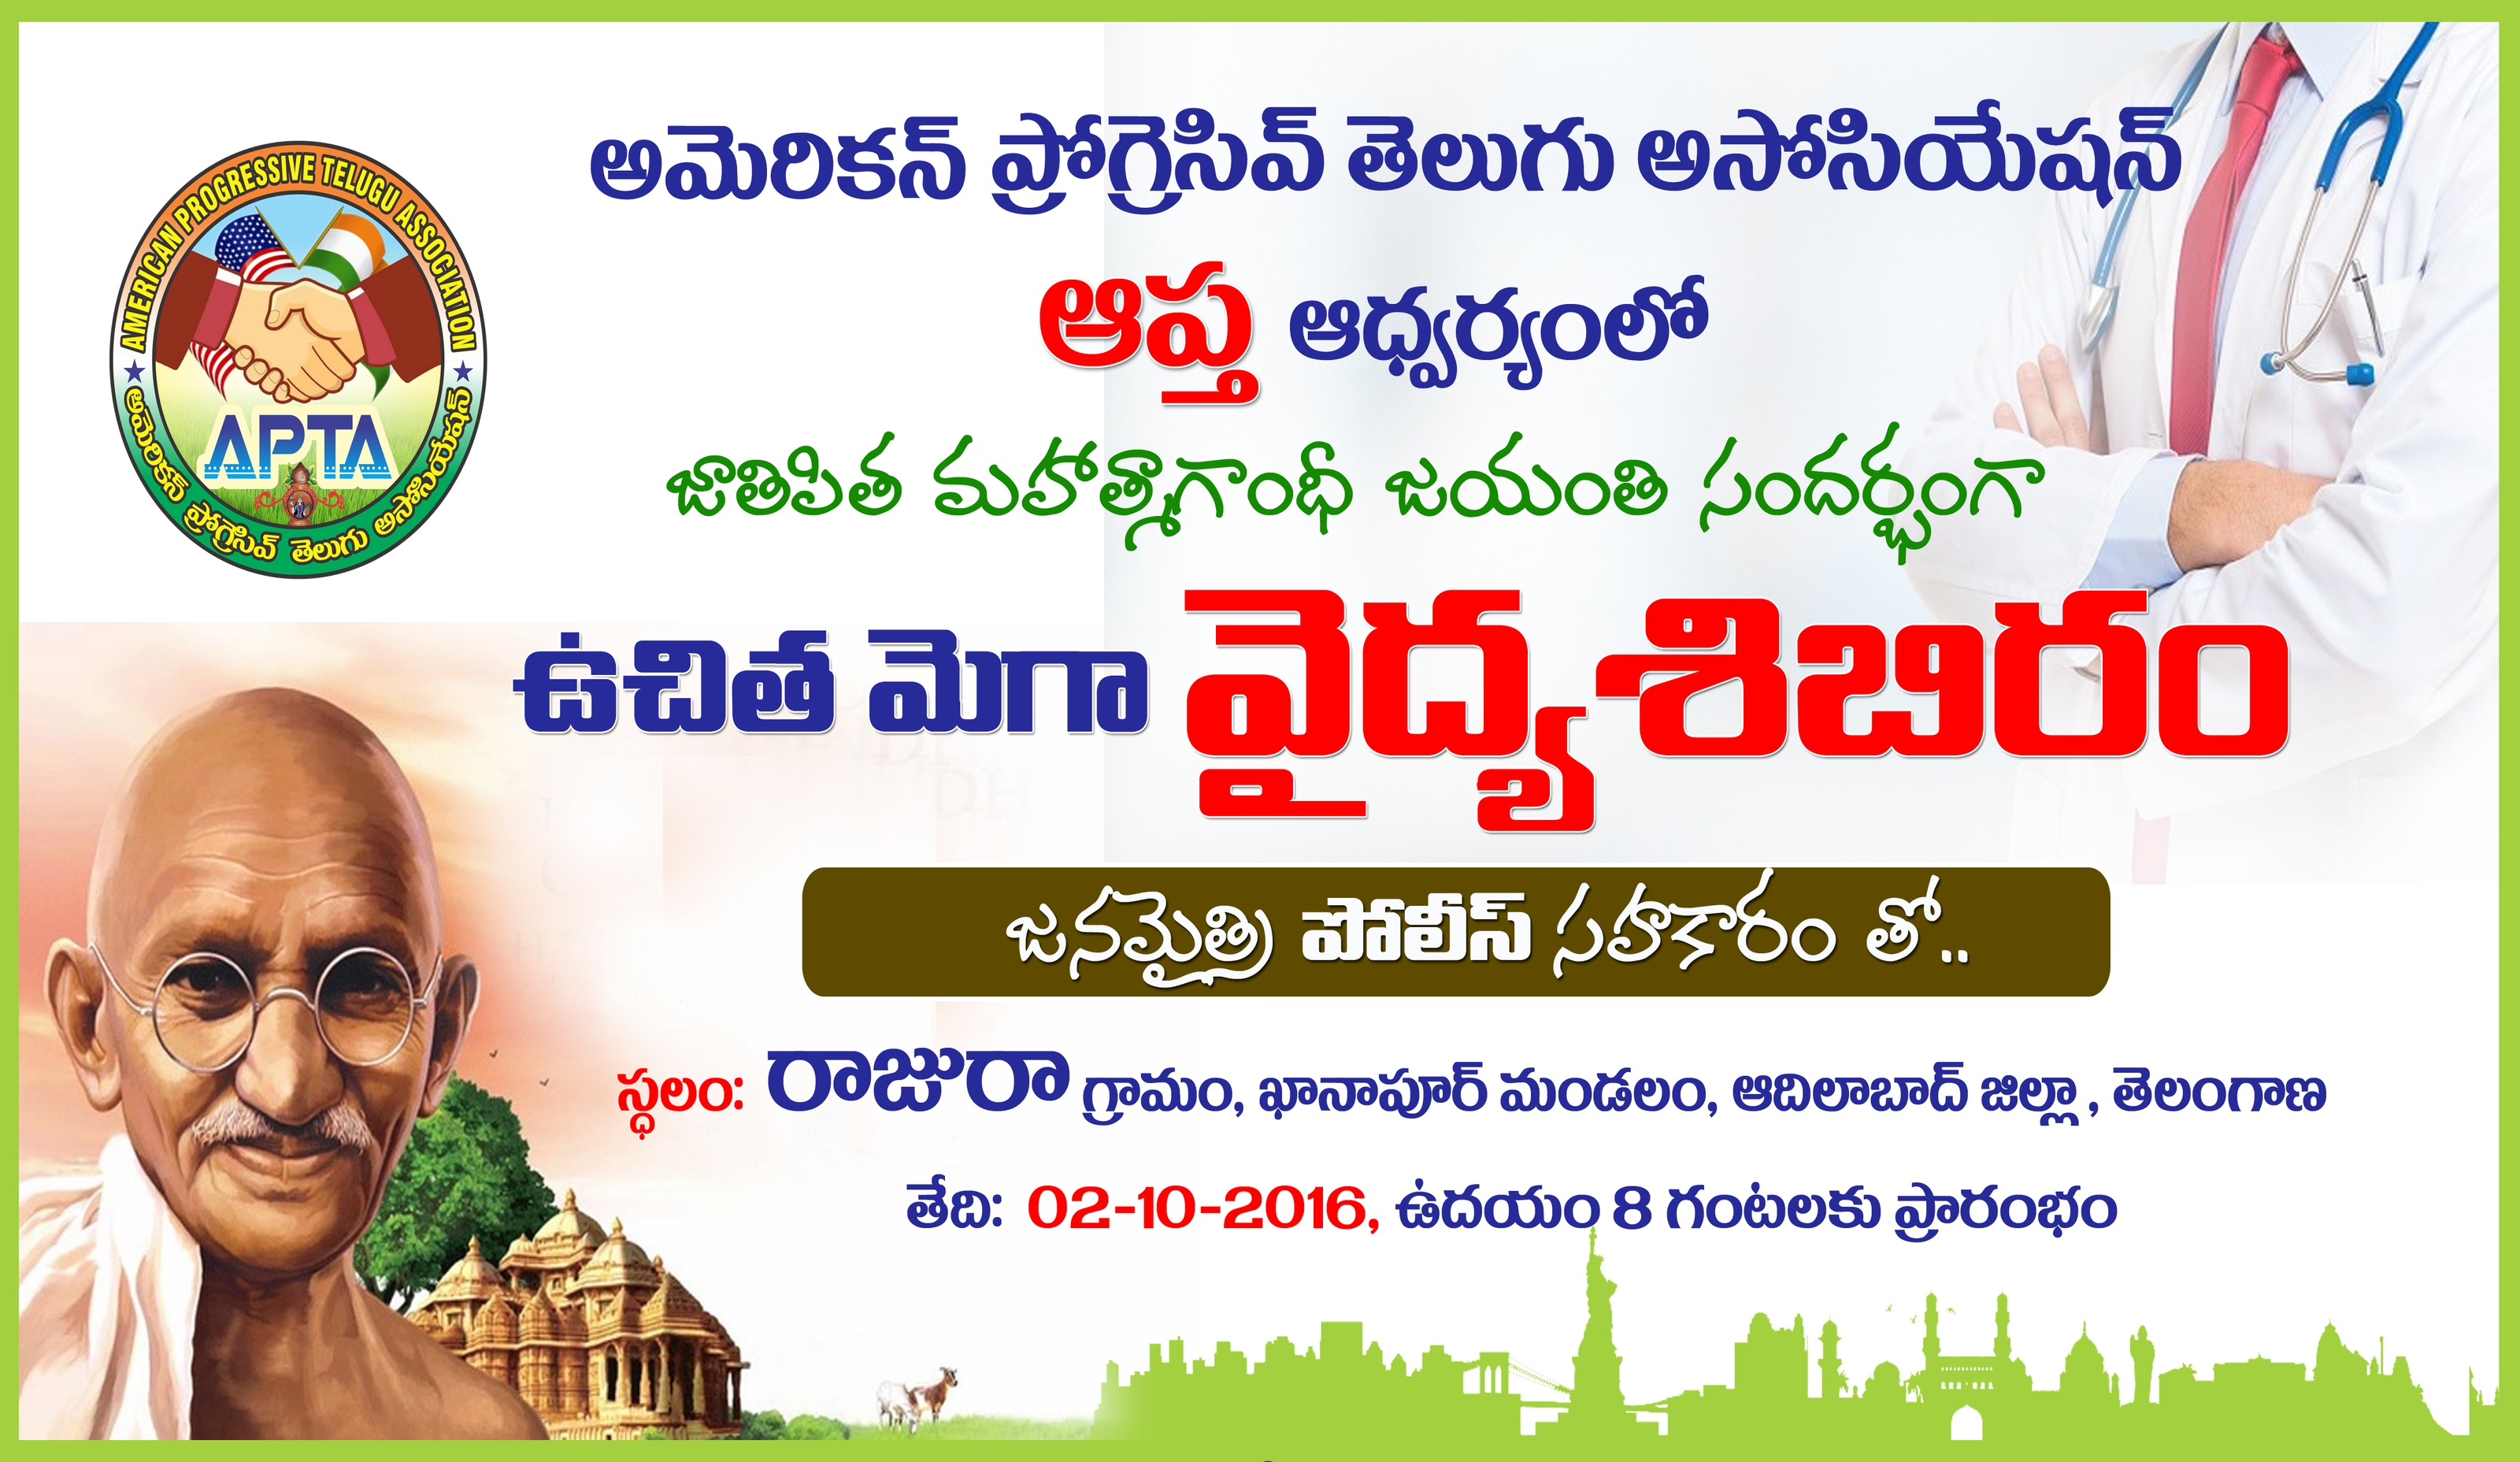 APTA Free Mega Medical Camp at Adilabad Dt, Telangana